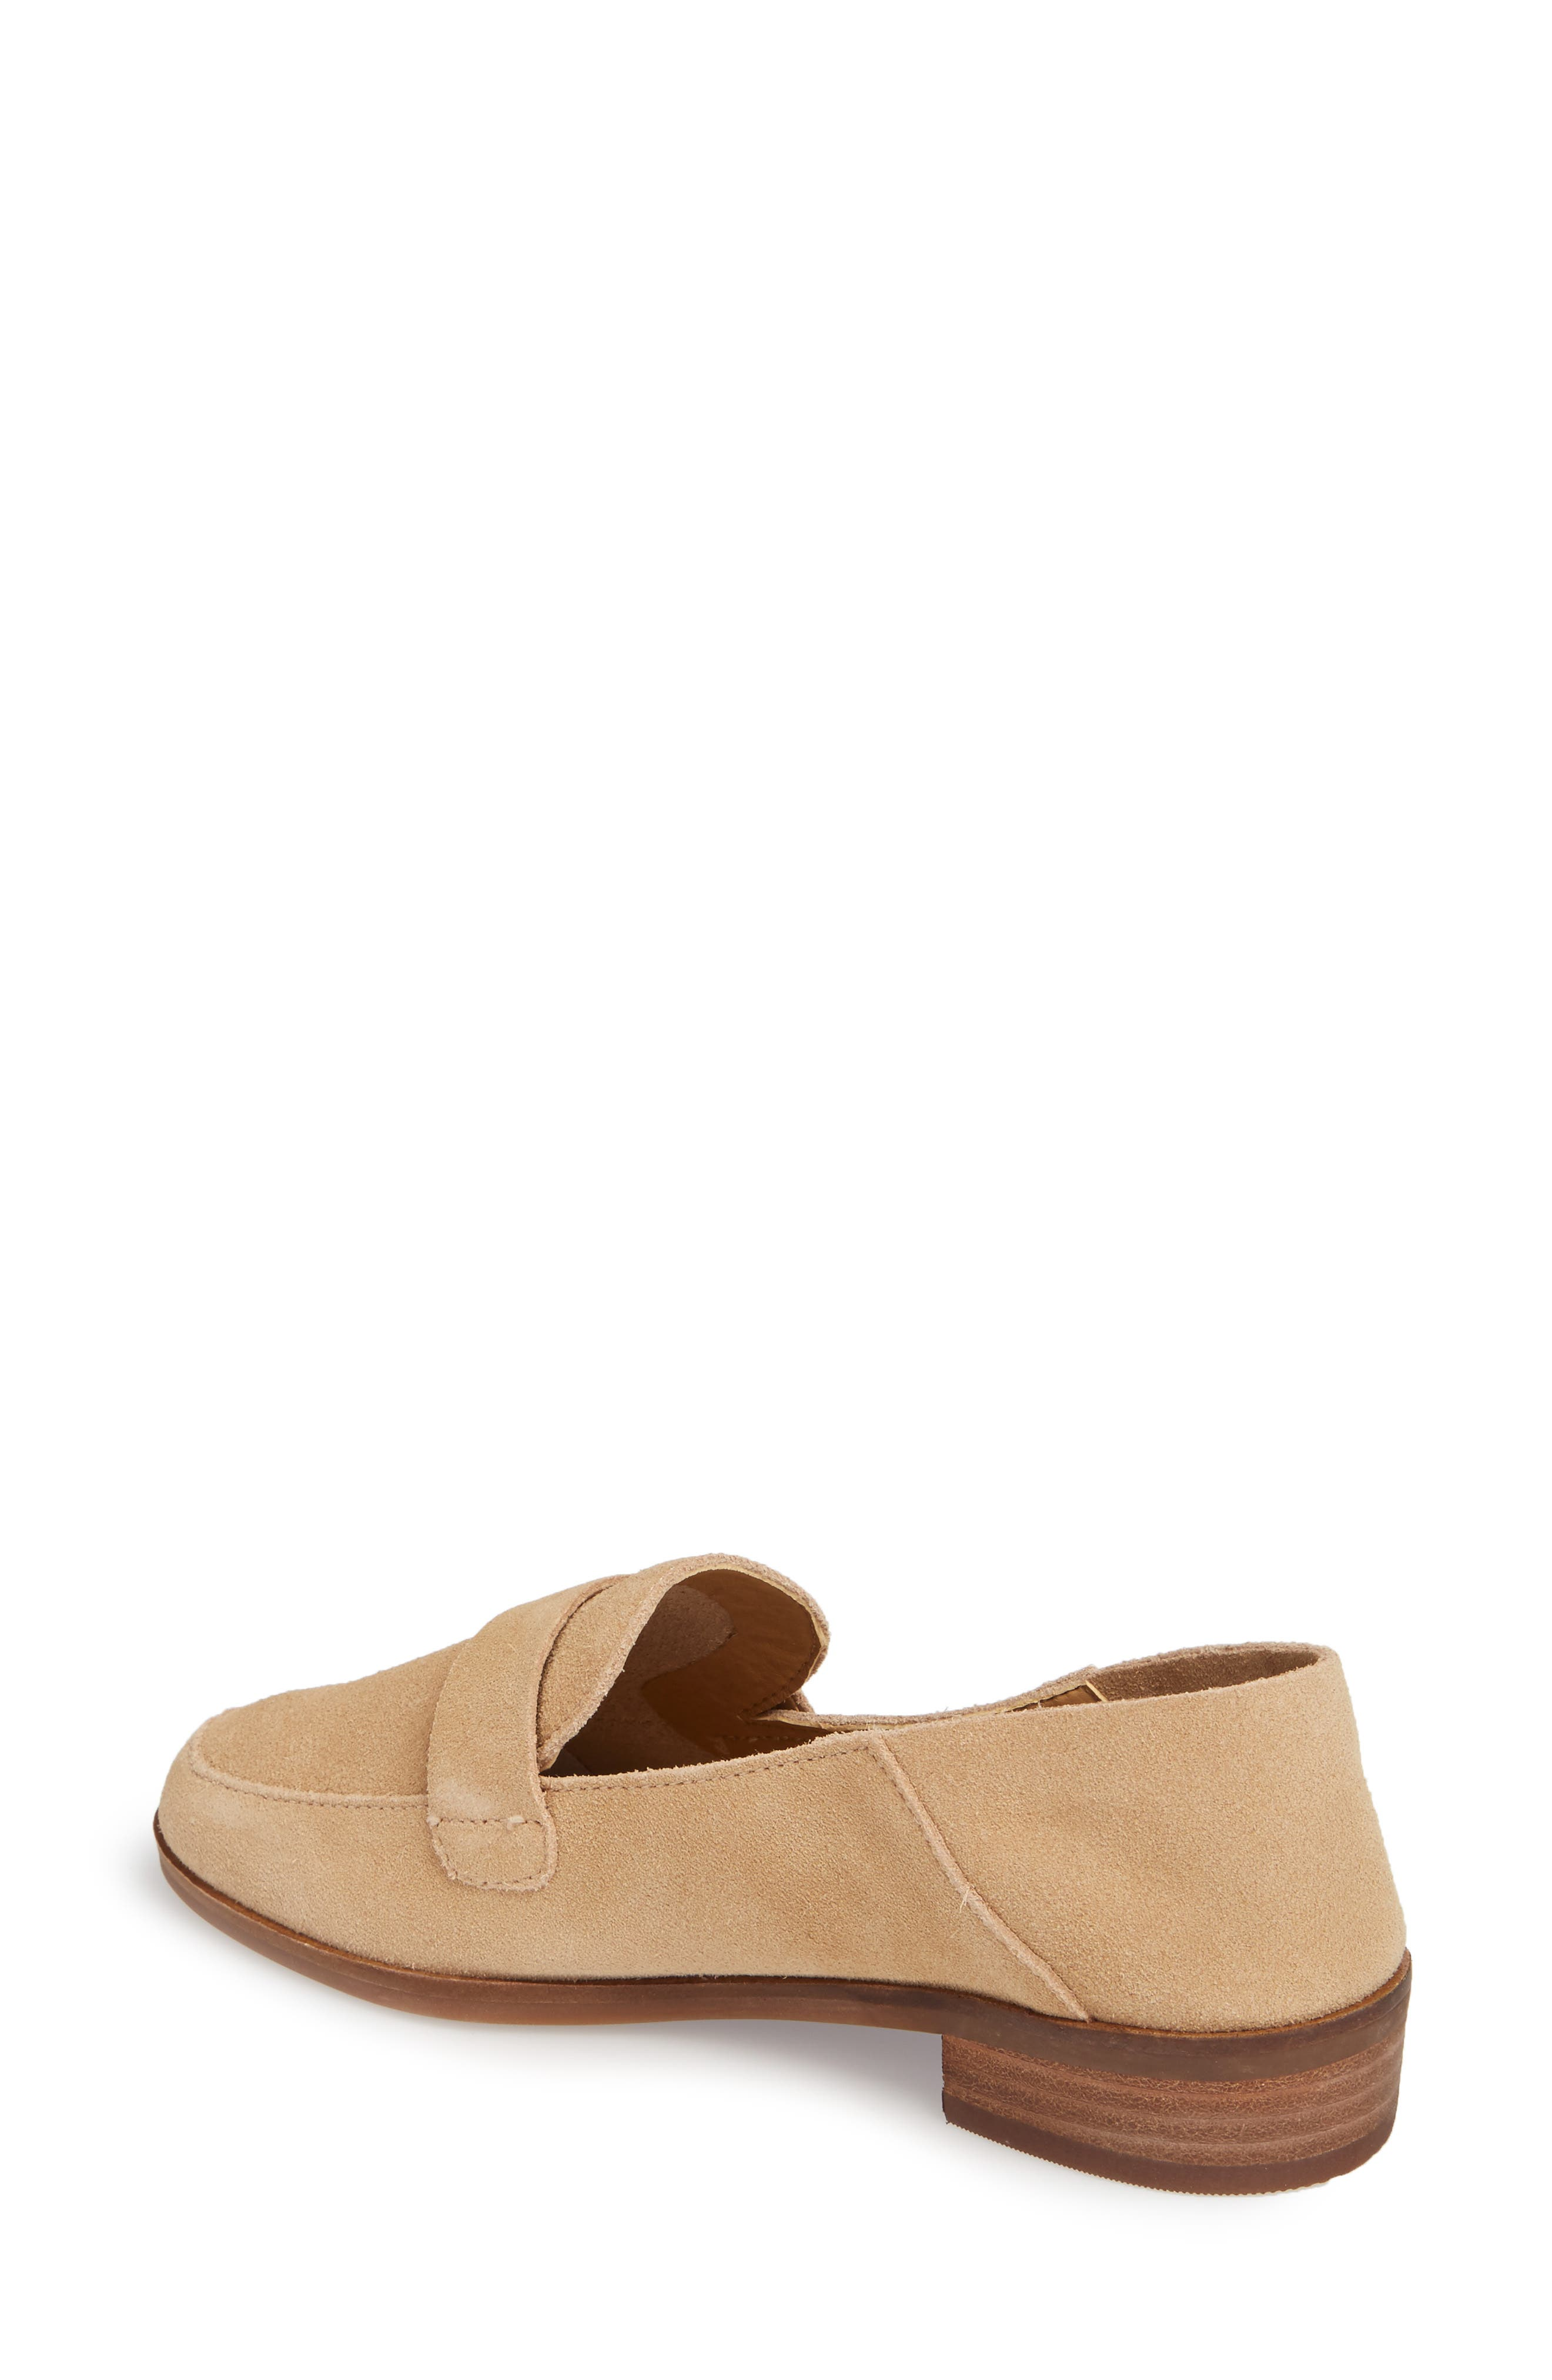 Chennie Loafer,                             Alternate thumbnail 2, color,                             Travertine Suede